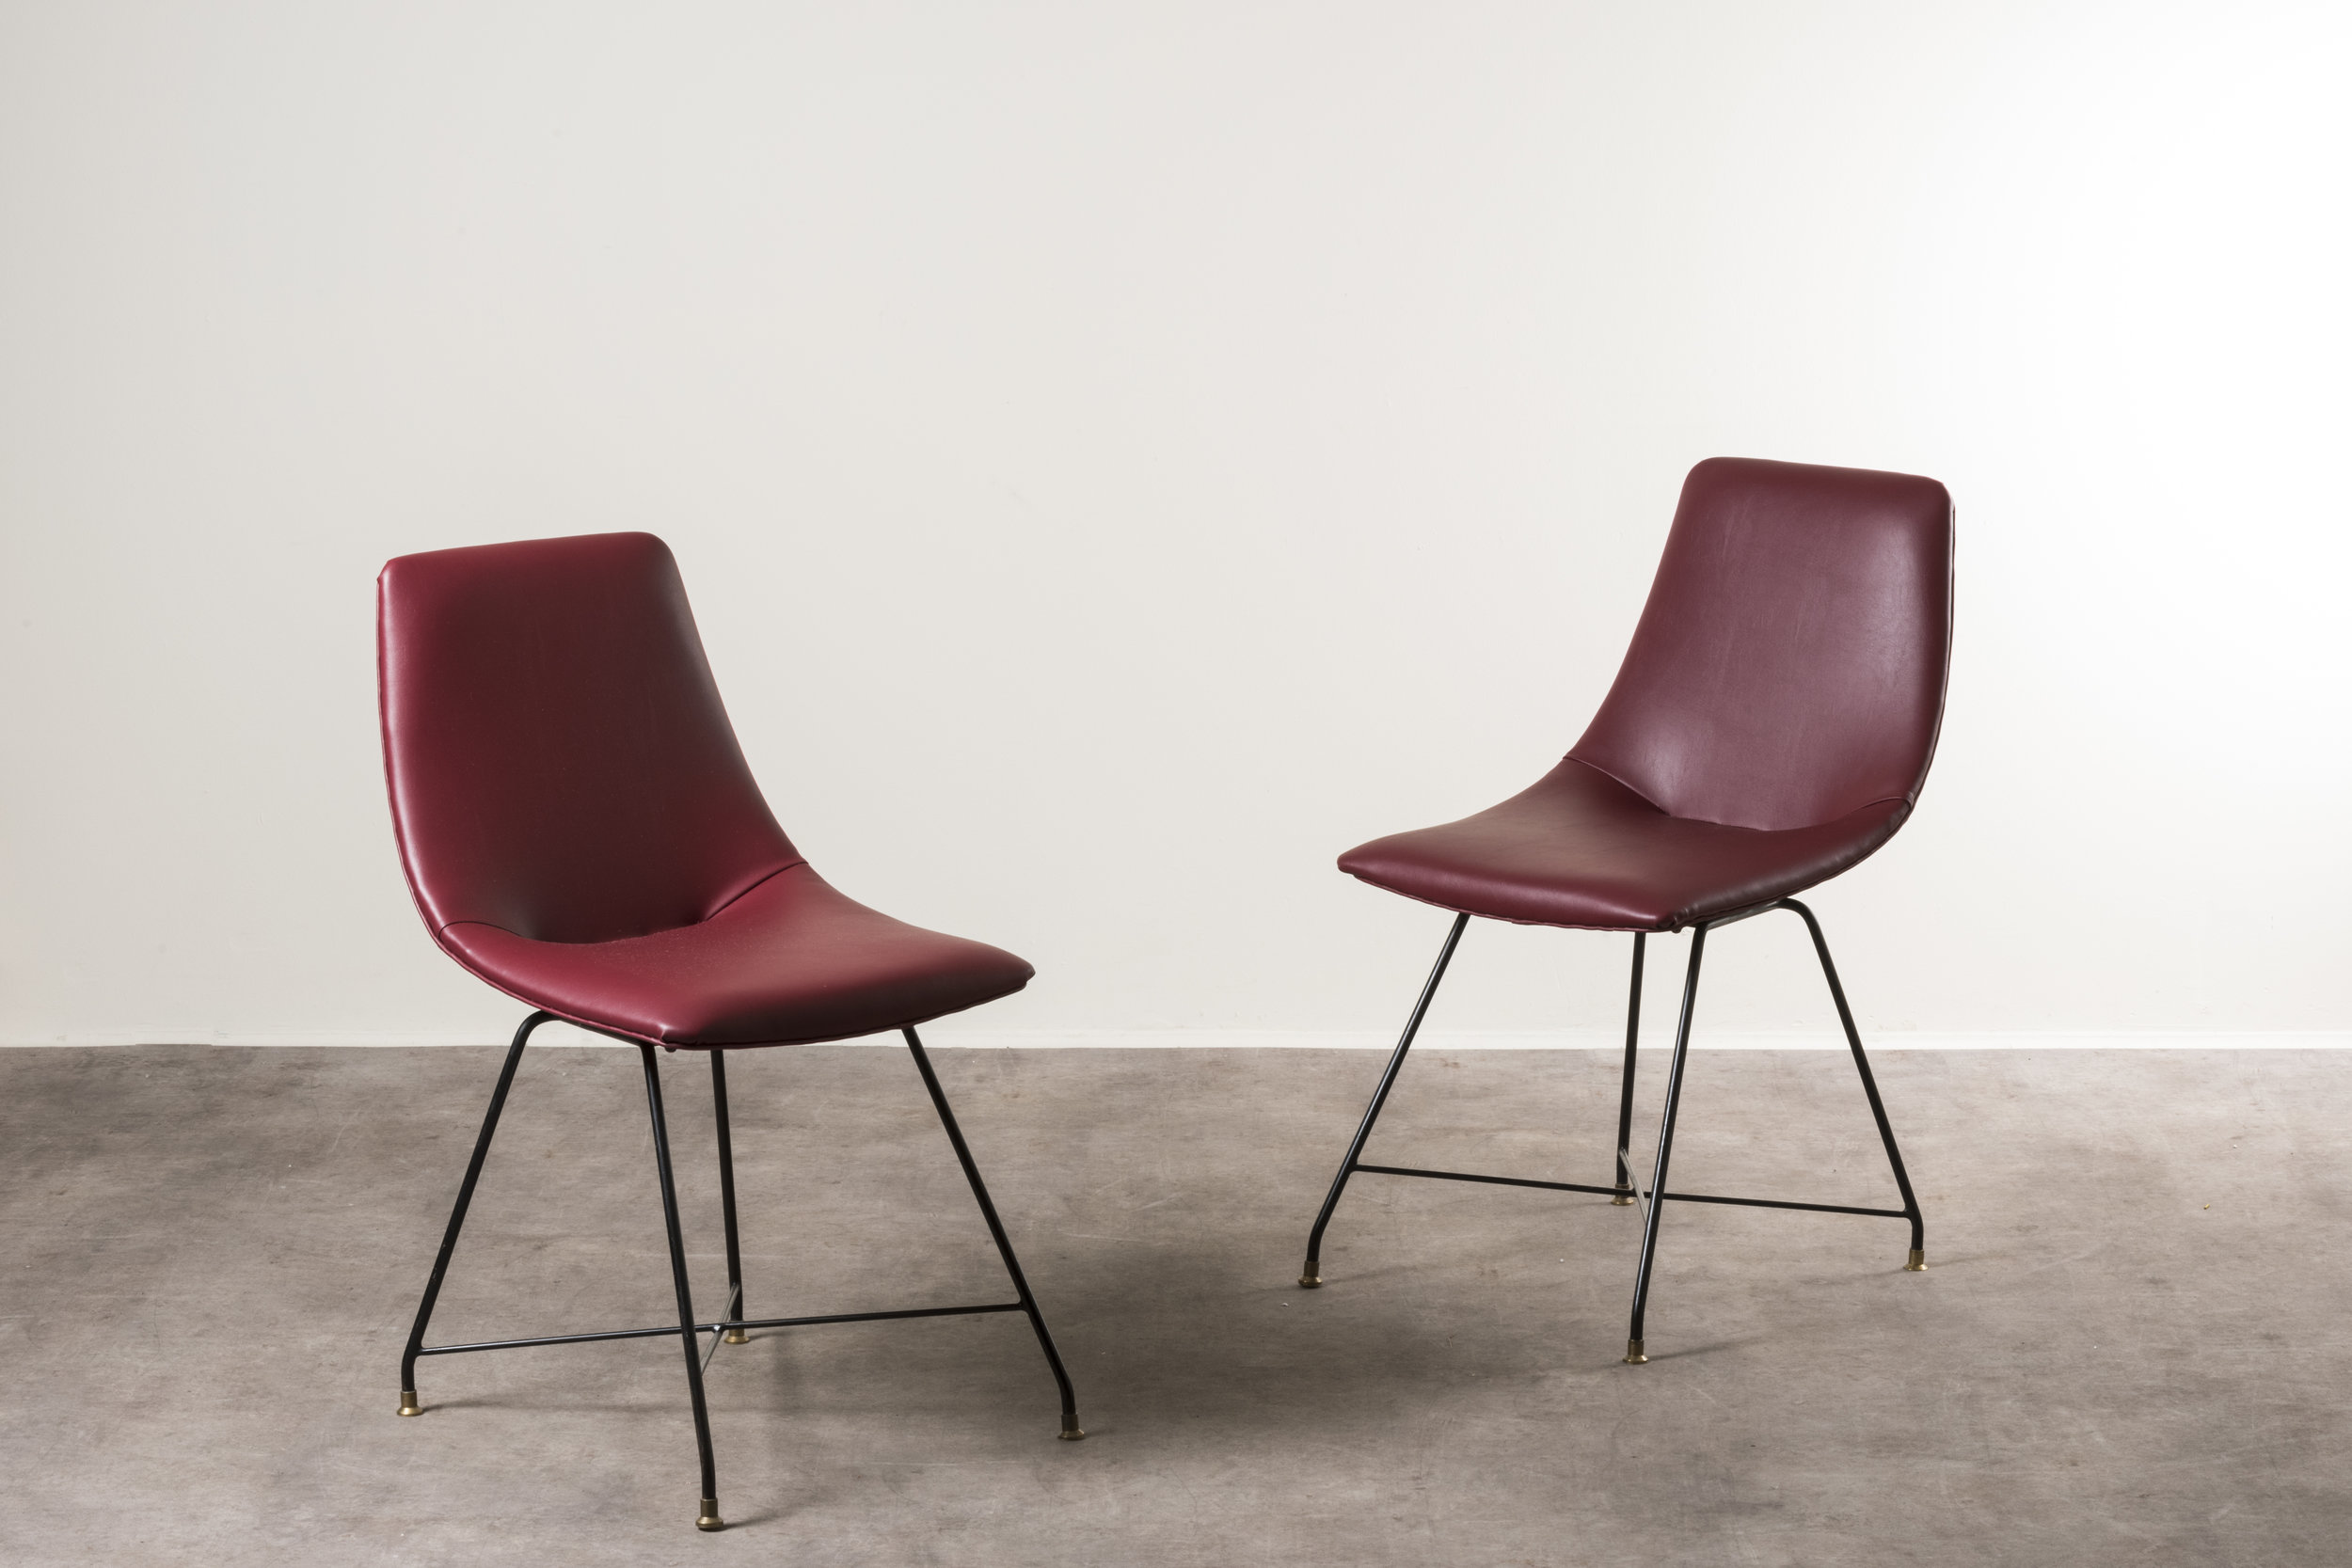 Chairs, Italy, 1950s  Design: Augusto Bozzi Manufactured by Saporiti Painted steel, leather upholstery Size: 44 x 49 x h 80 | seat h 44 cm / 17,3 x 19,2 x h 31,4 | h seat h 17,3 in  ⓒ Nilufar Gallery